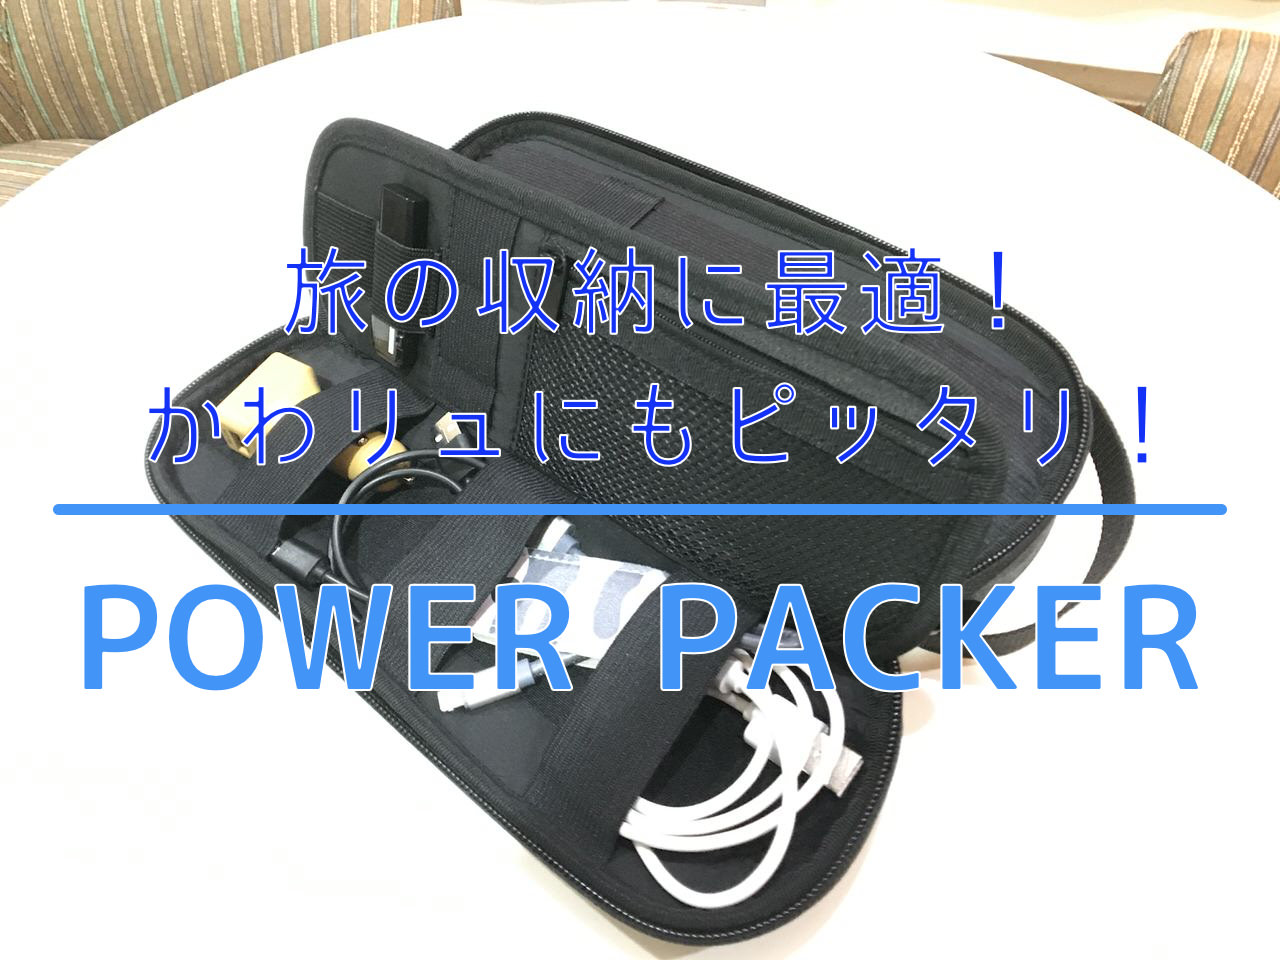 POWER PACKER 7836 1